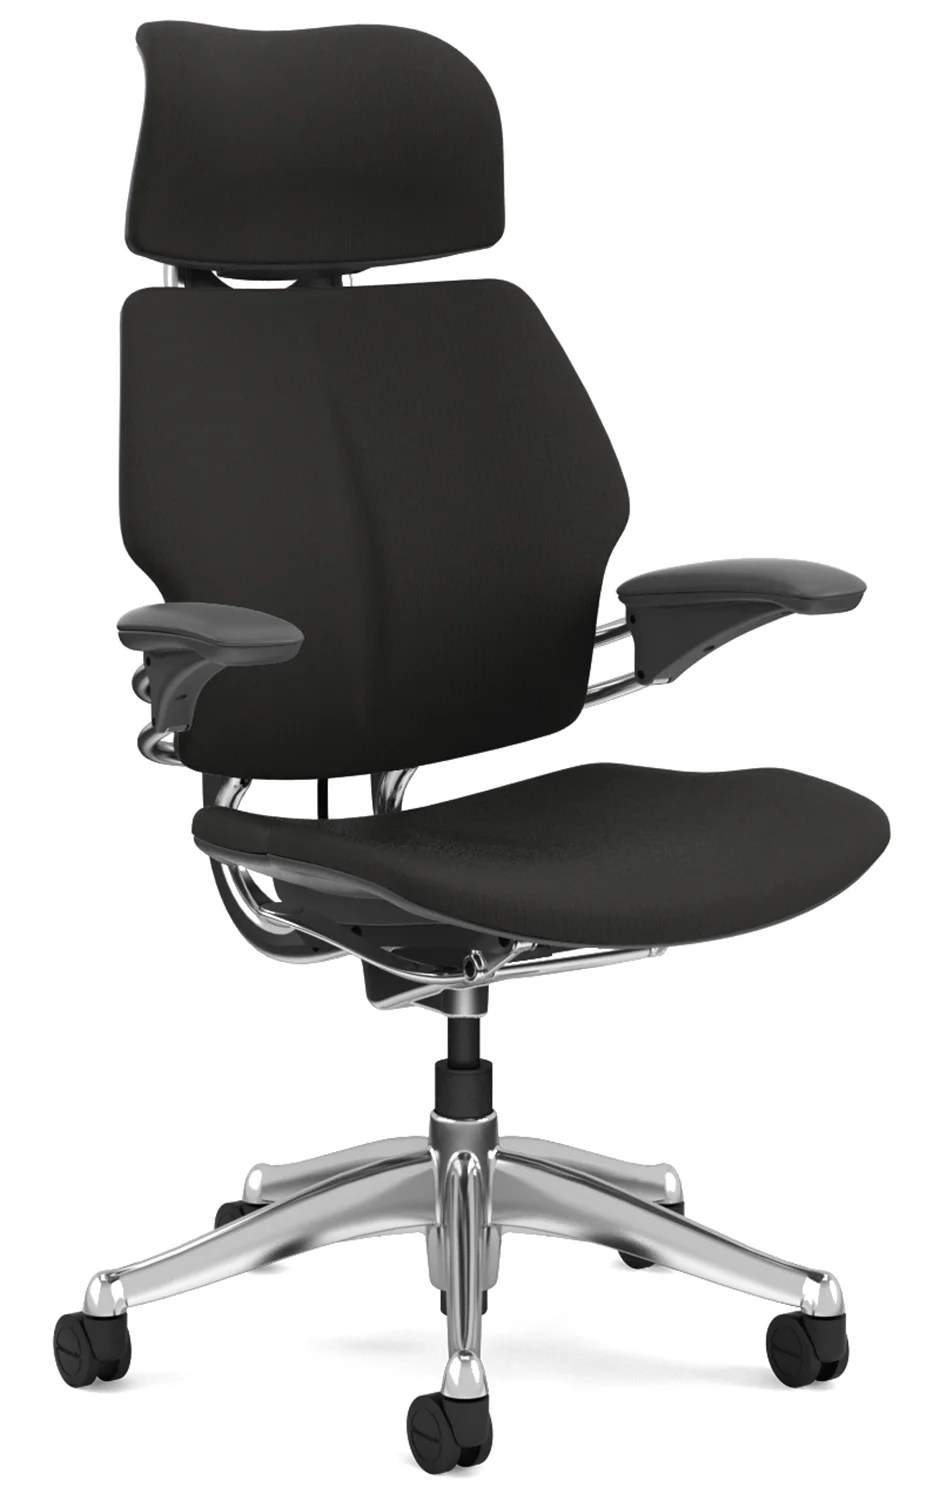 Humanscale Diffrient World Chair Humanscale Wayfair